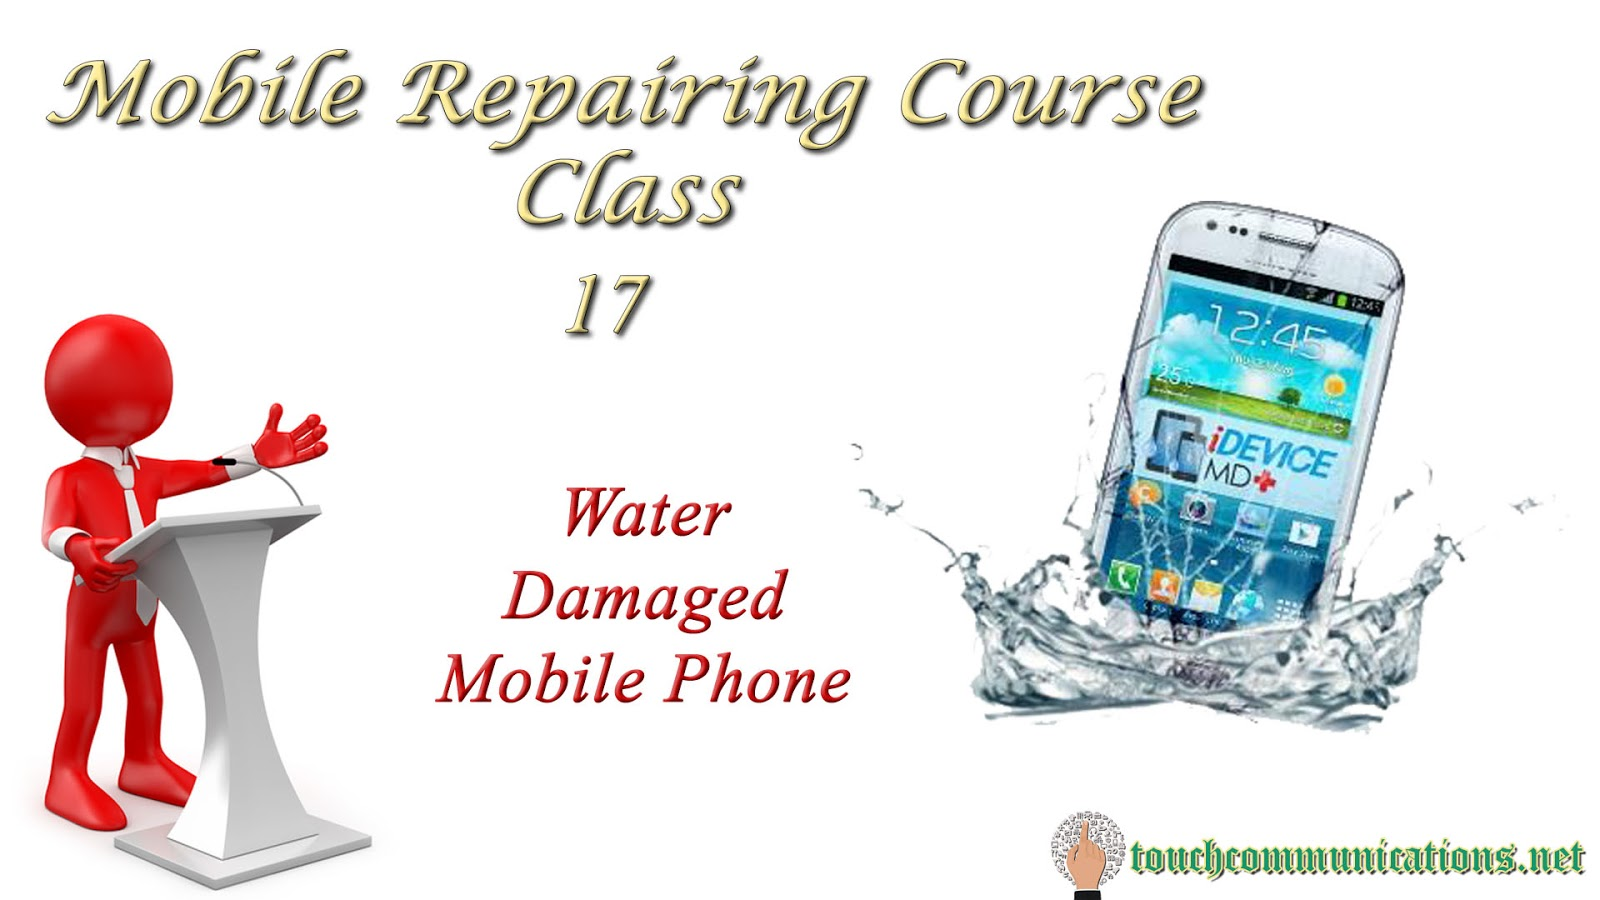 Mobile Repairing Course Online Free Class 17 Water Damage